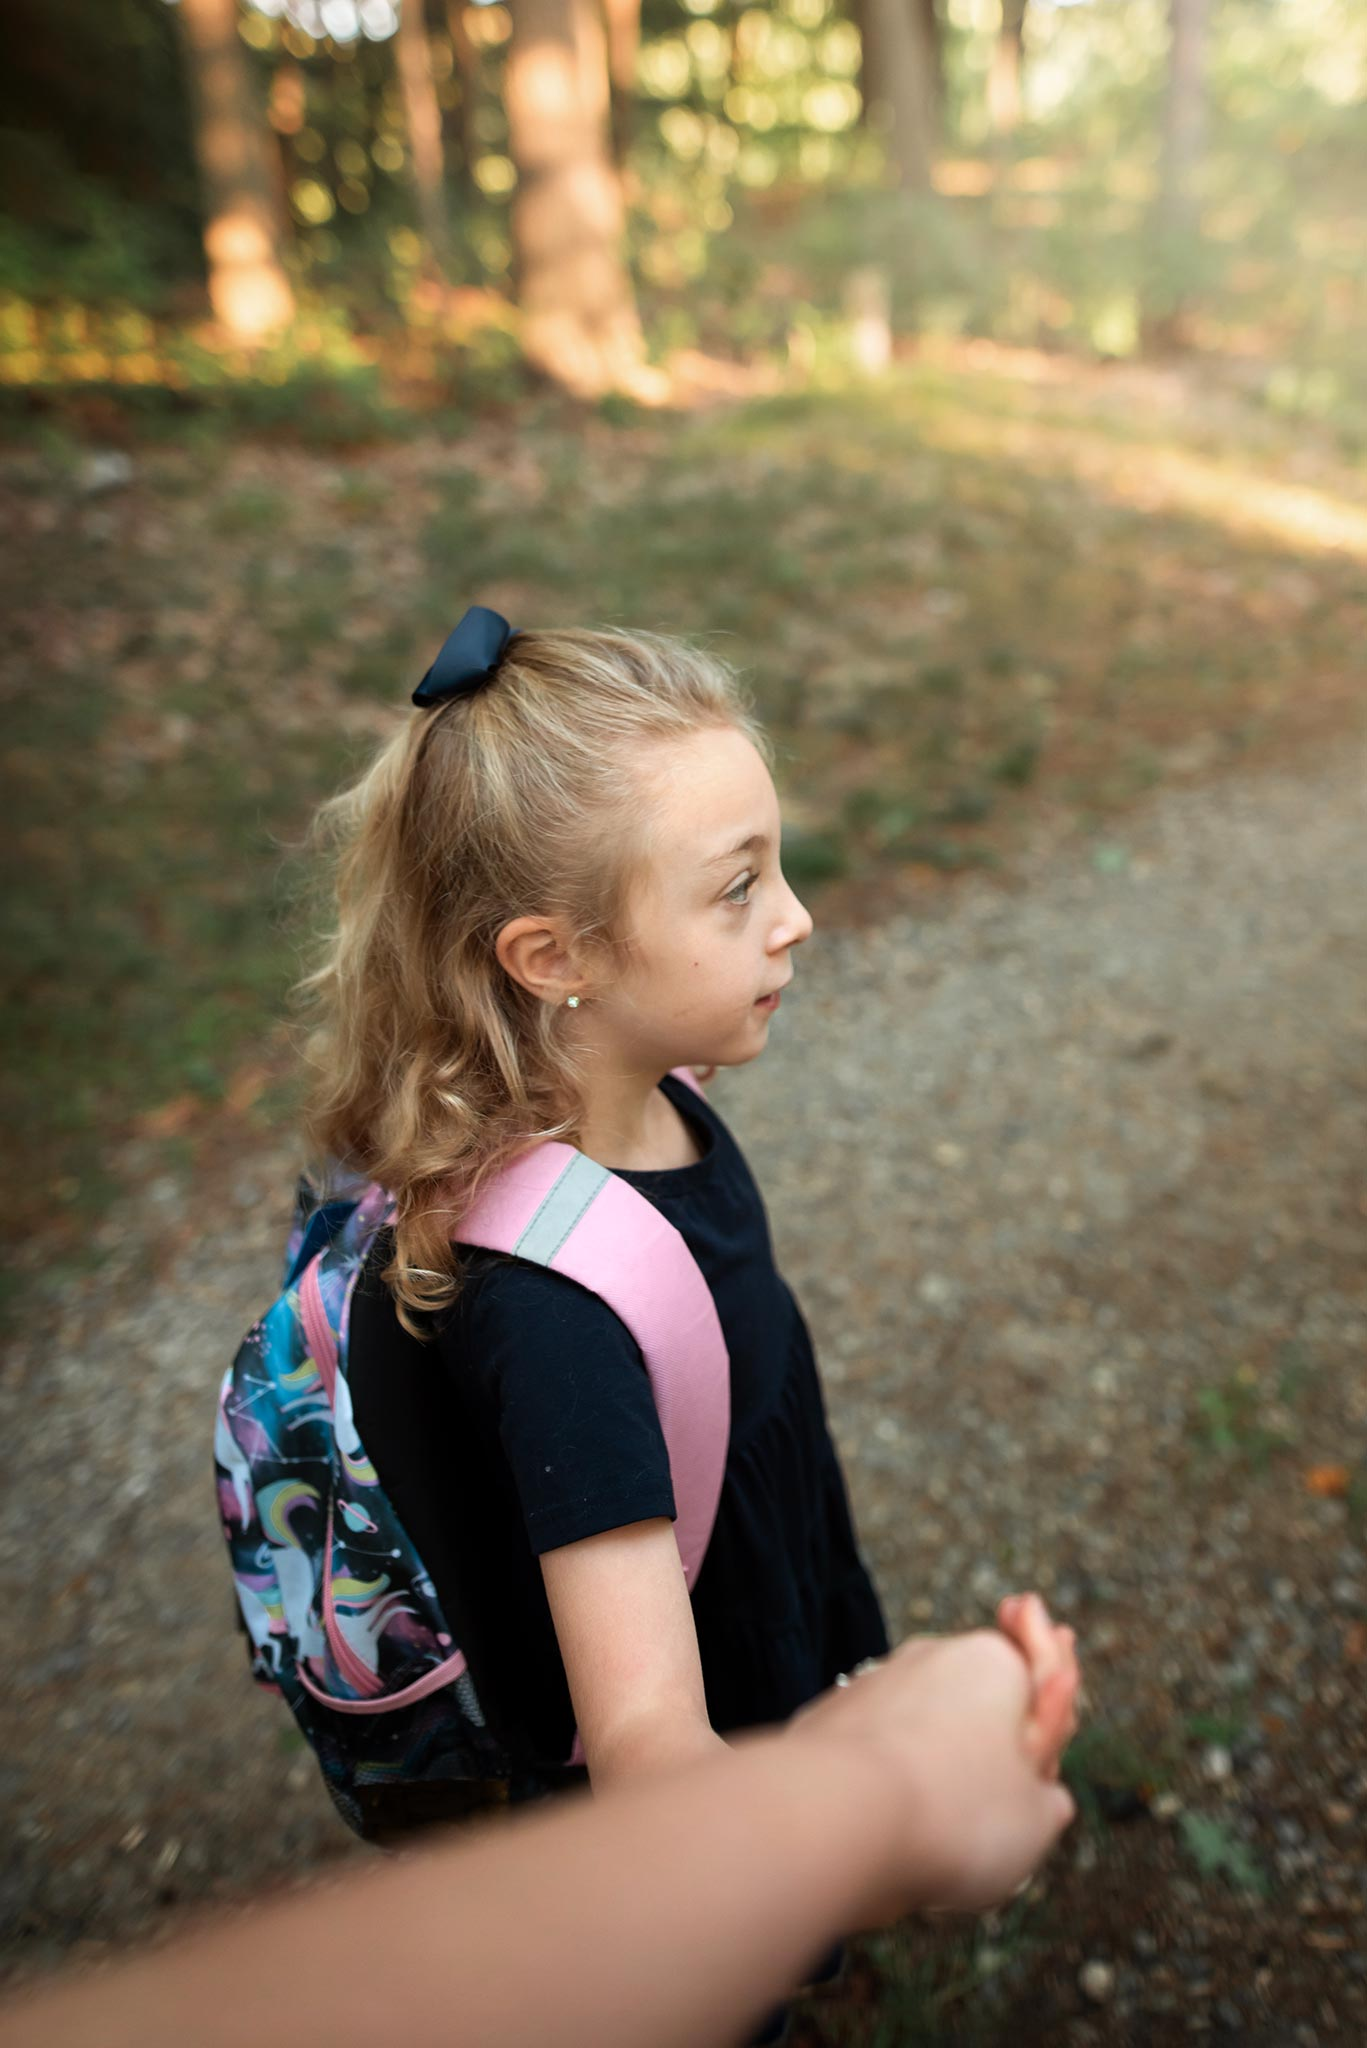 7:51 am… Walking Charlotte to the bus. 24mm, ISO 400, f 2.2, 1/250s